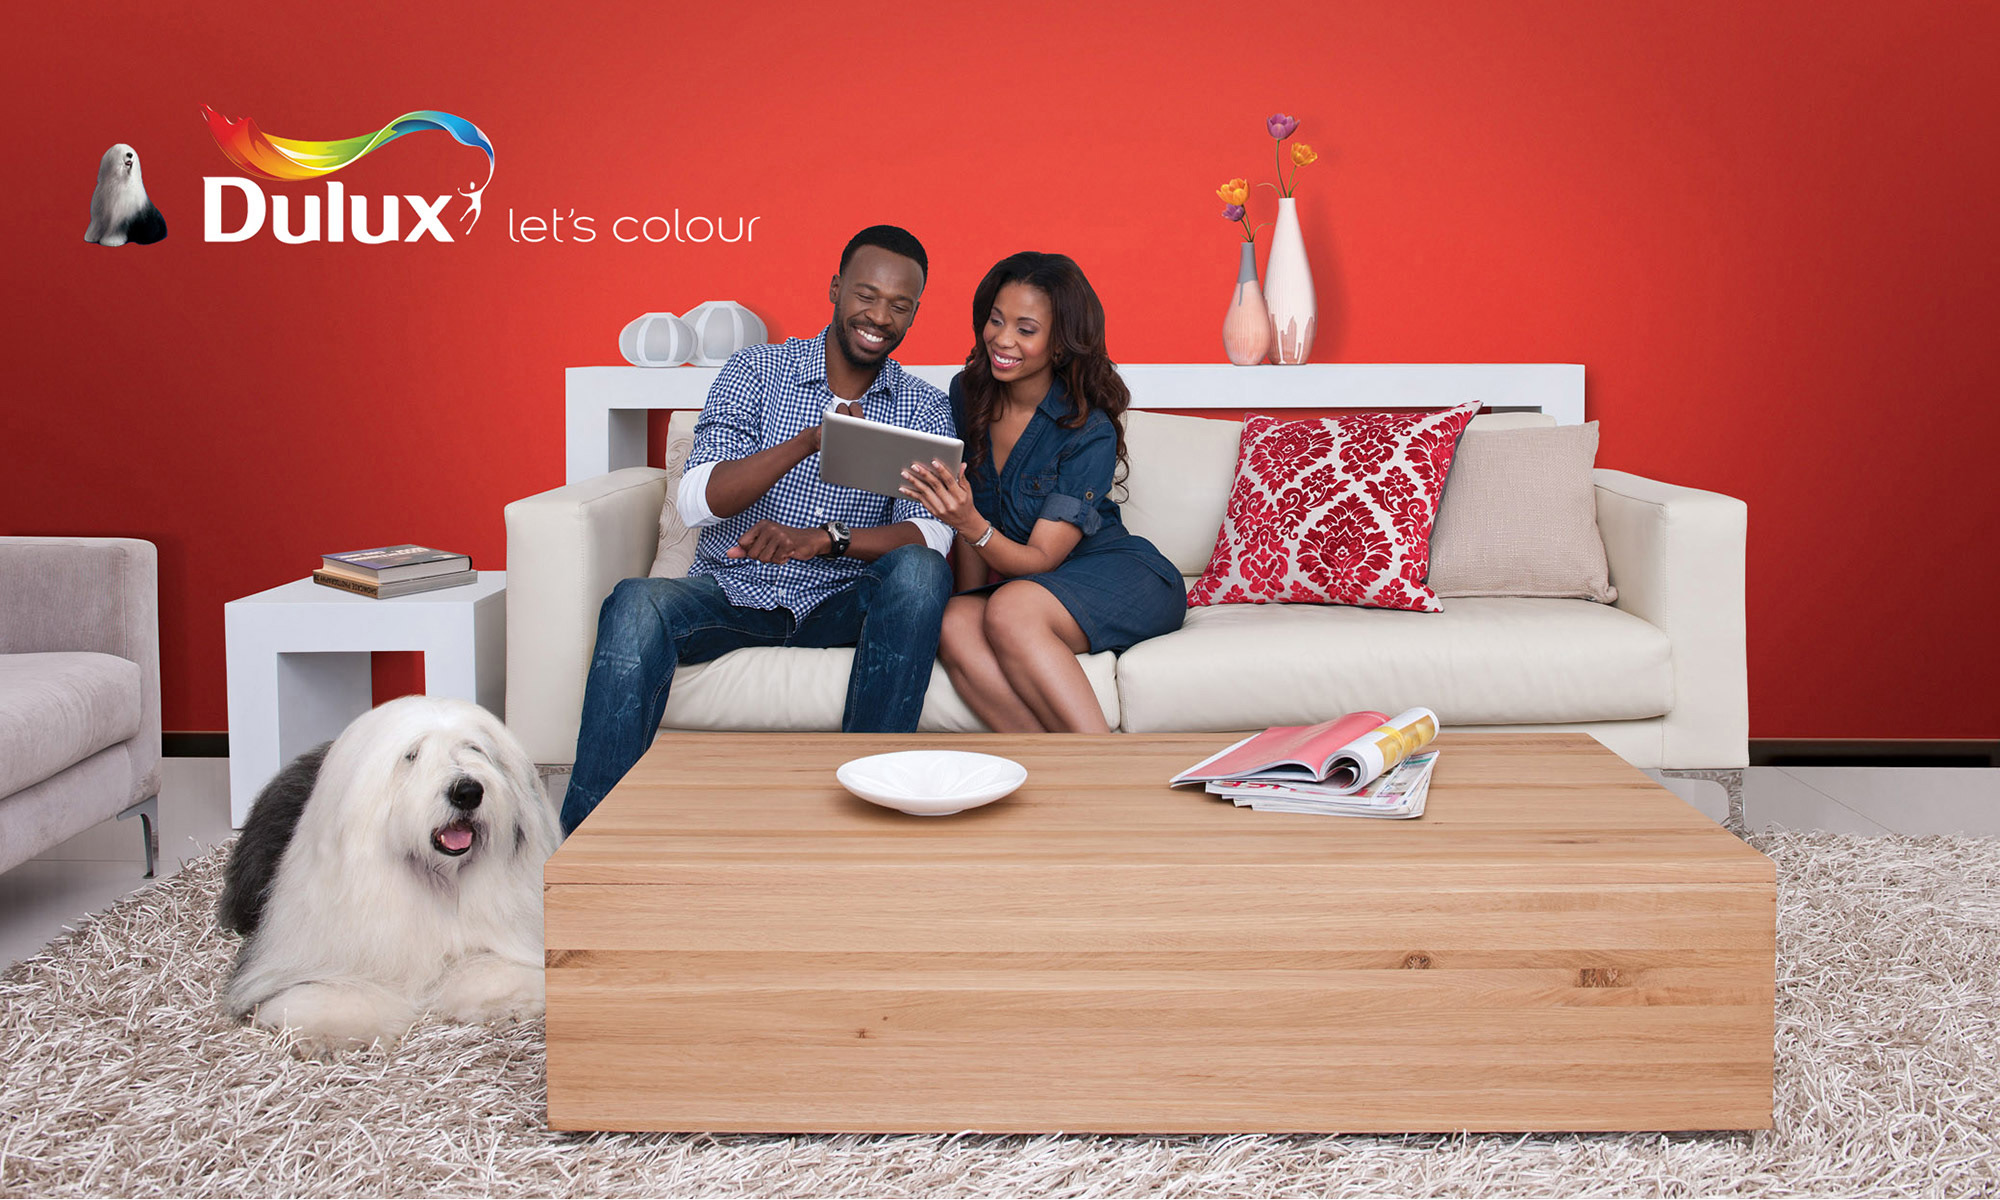 Dulux Advertising Campaign